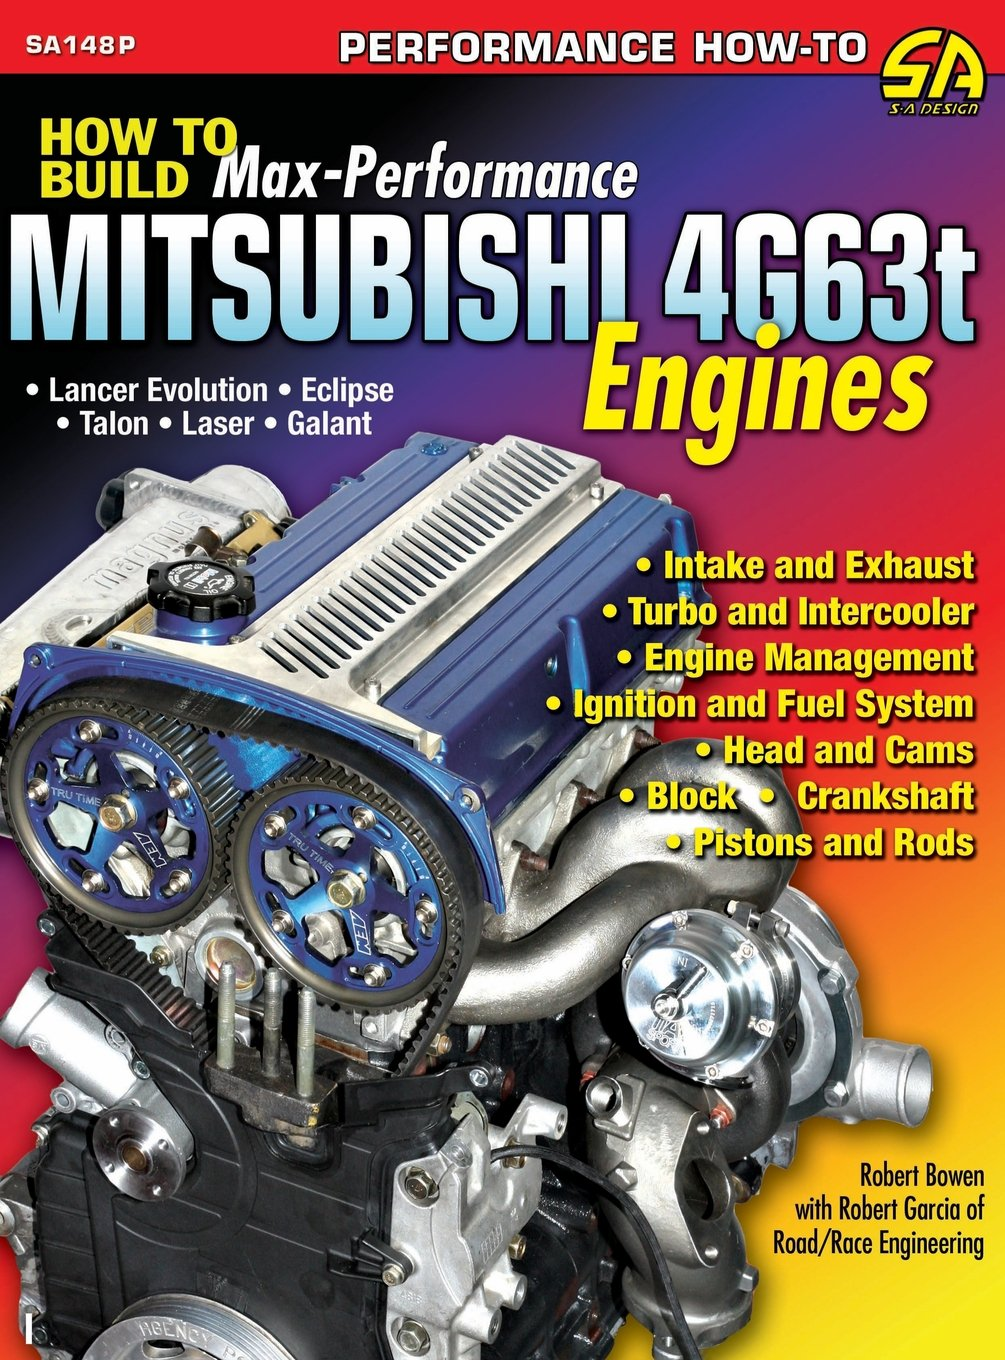 How to Build Max-Performance Mitsubishi 4g63t Engines: Amazon.es: Robert Bowen: Libros en idiomas extranjeros